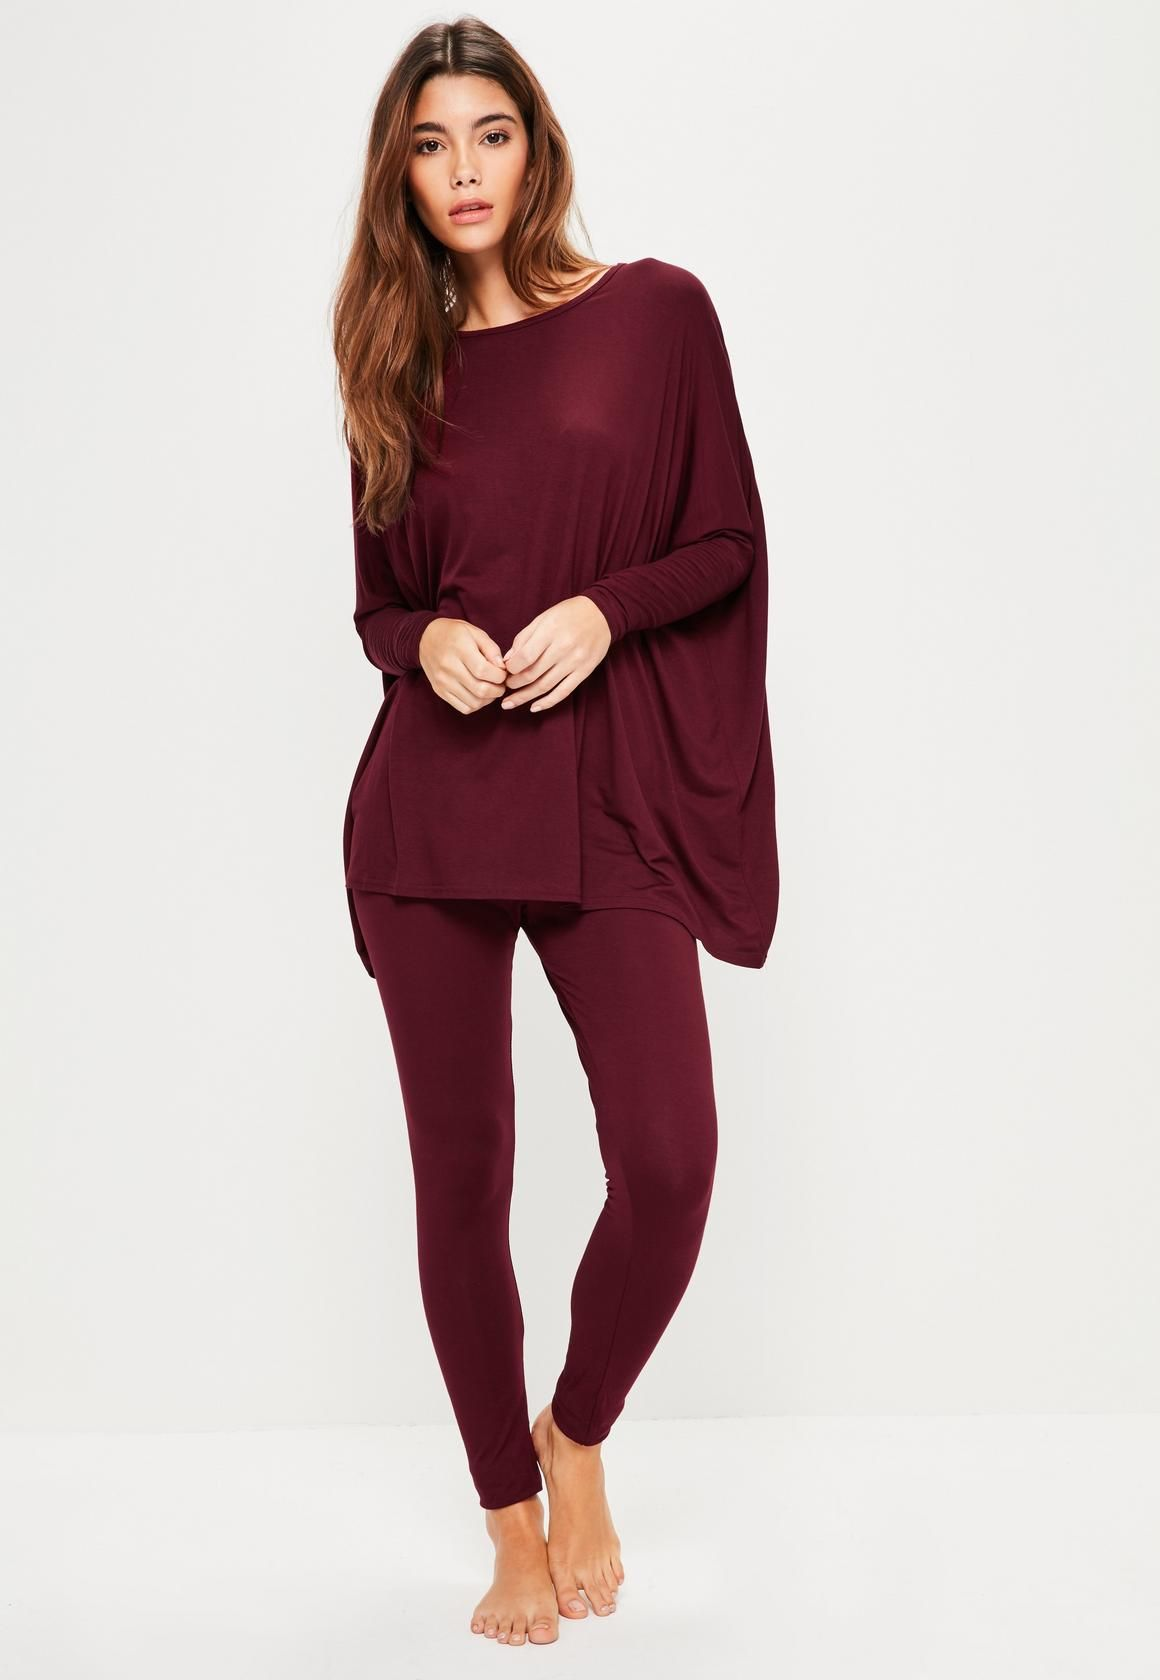 Missguided - Burgundy Oversized Jersey Loungewear Set